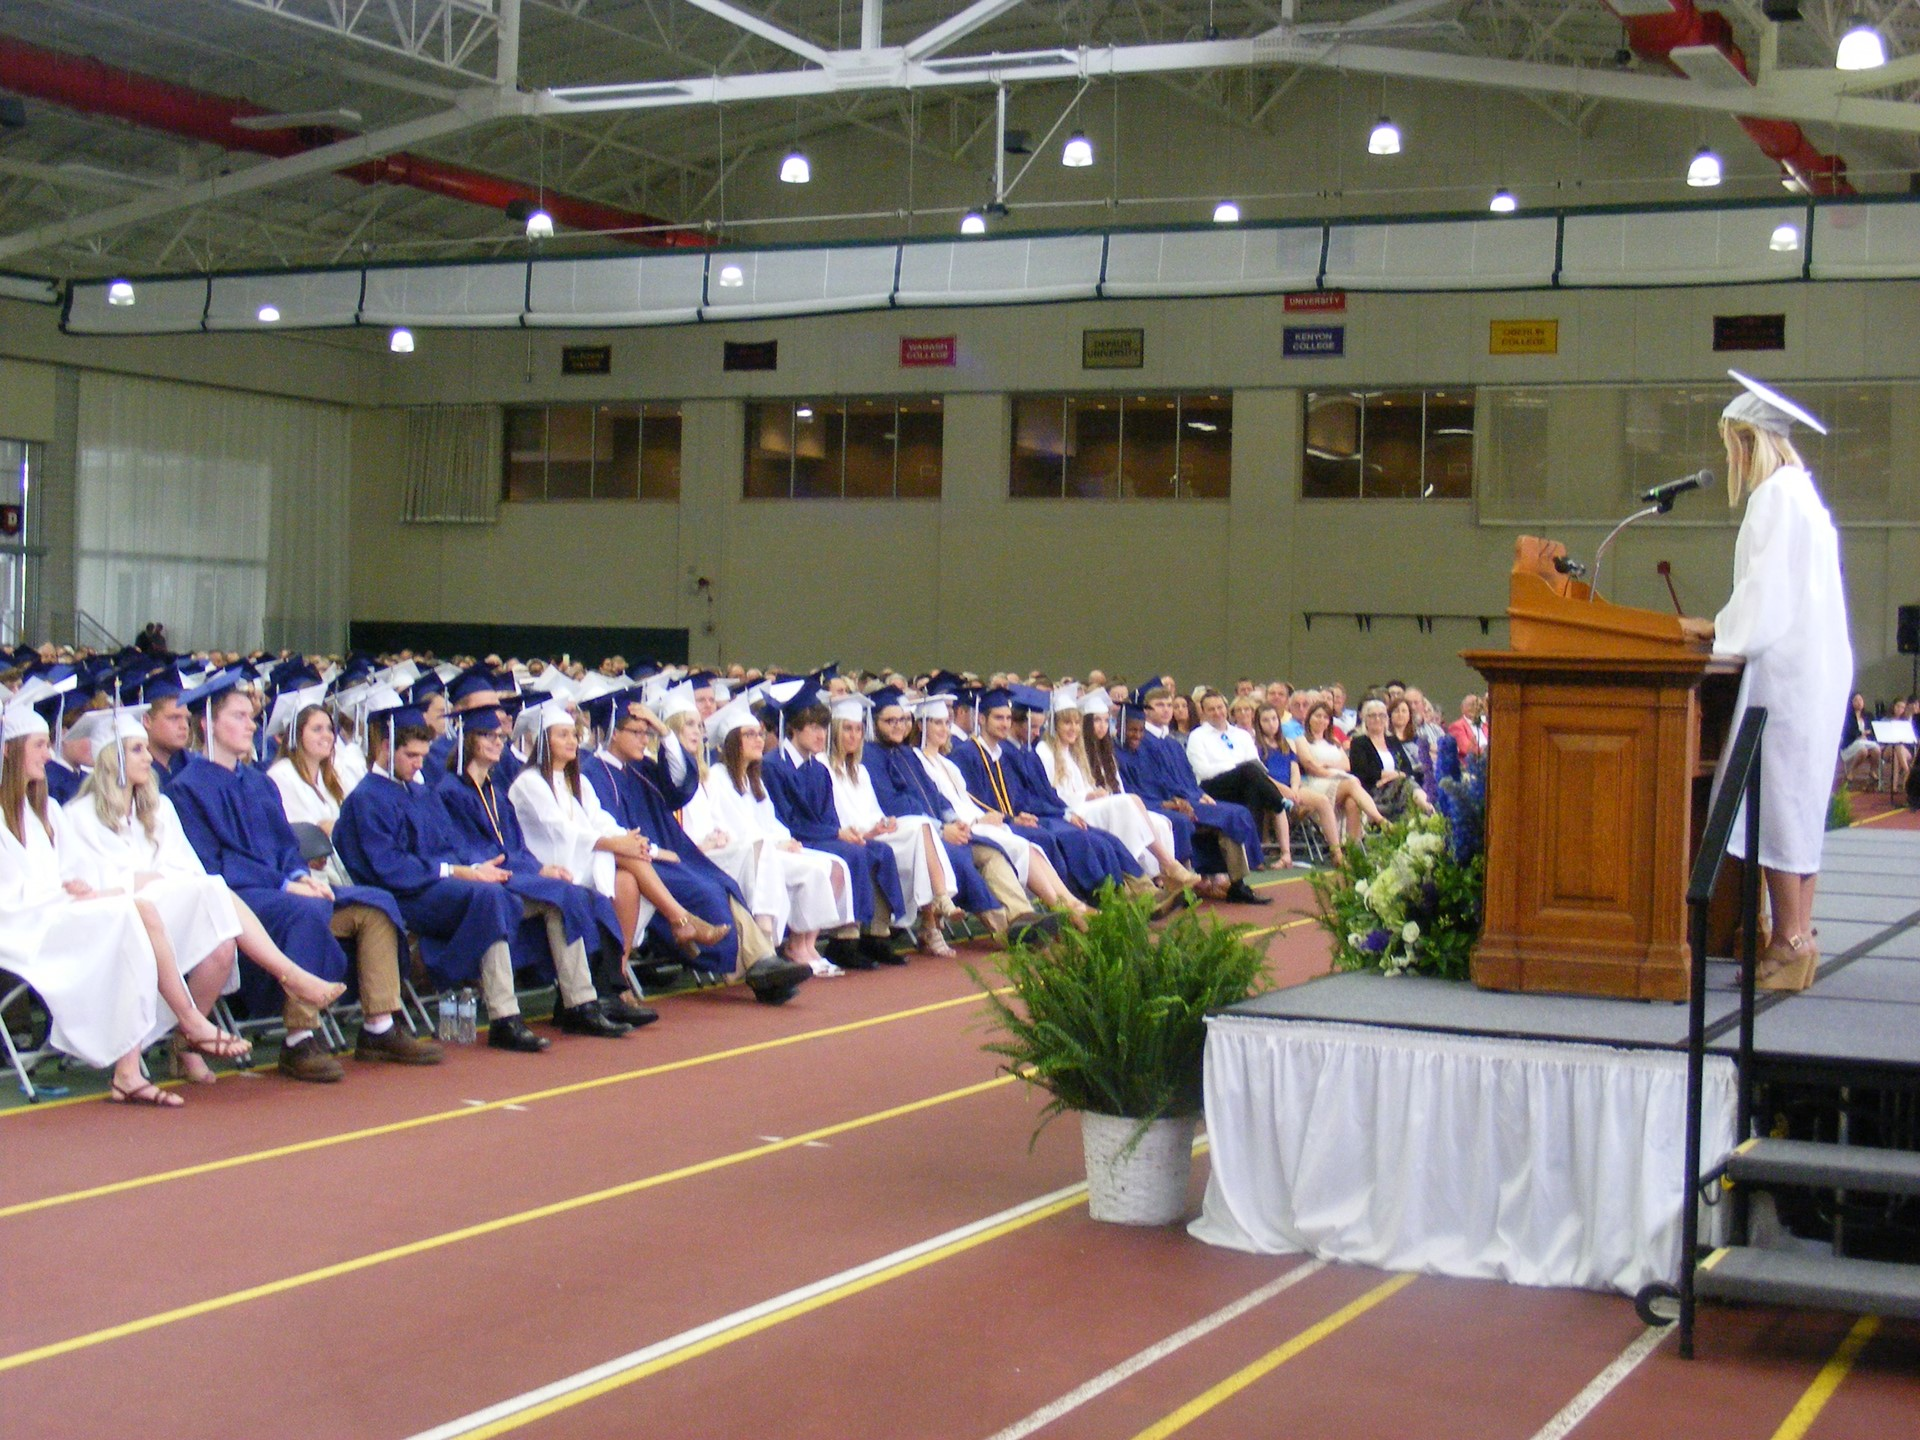 Student Speakers Address Their Class